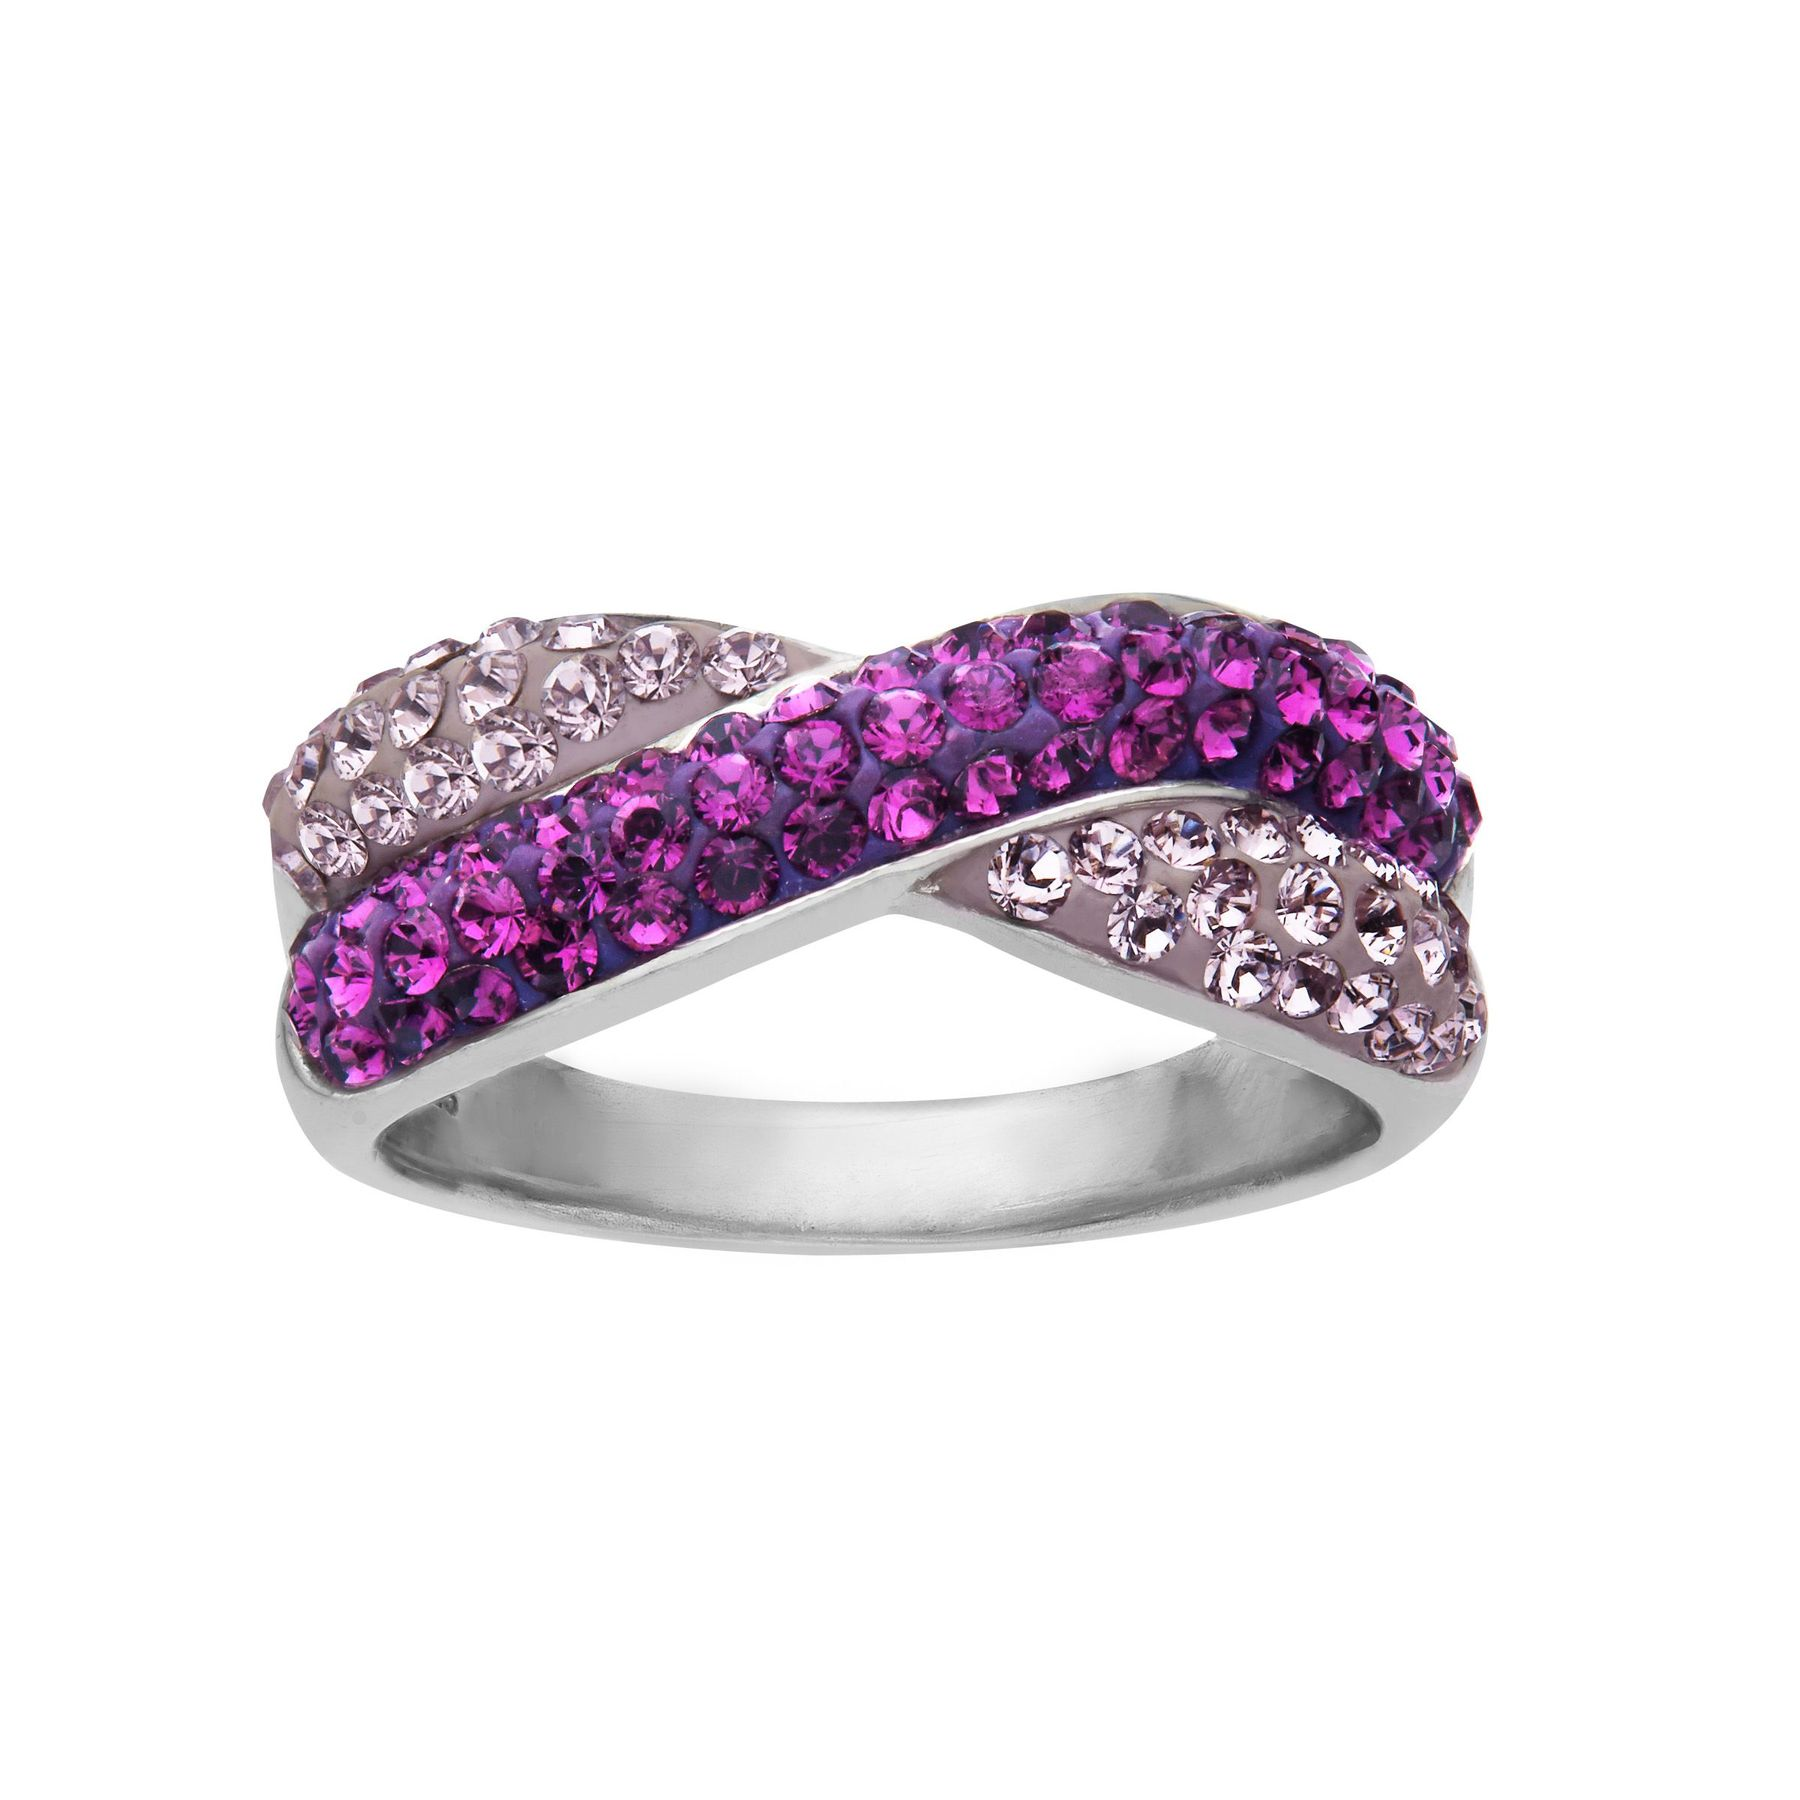 14d787201 Criss-Cross Band Ring with Violet & Lilac Swarovski Crystal in ...